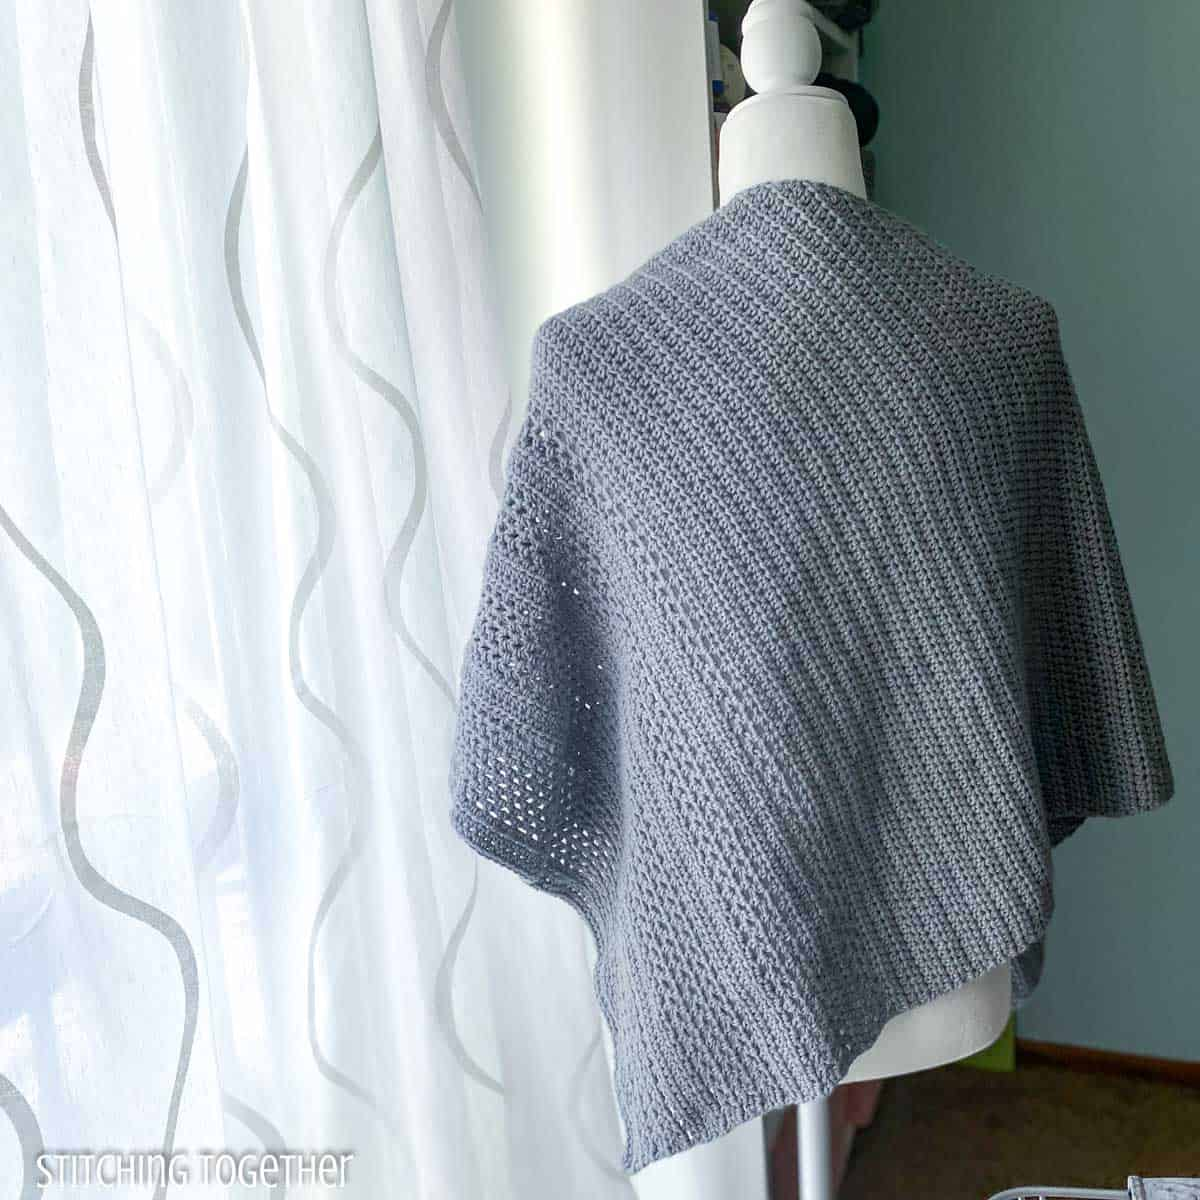 crochet shawl on a mannequin facing away